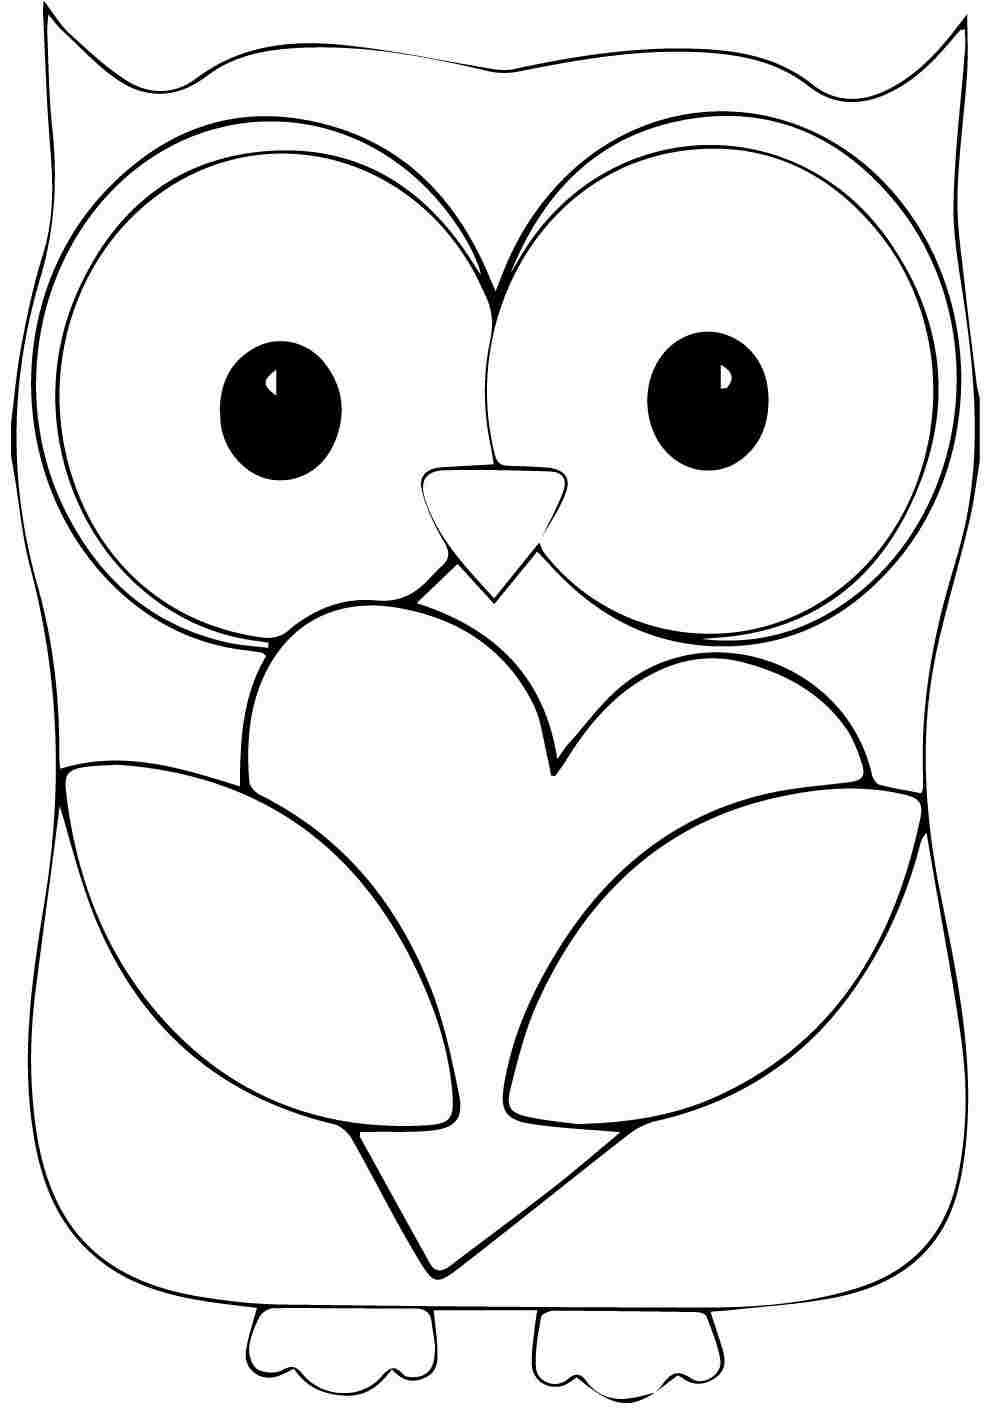 printable animal owl coloring sheets for kindergarten birthday